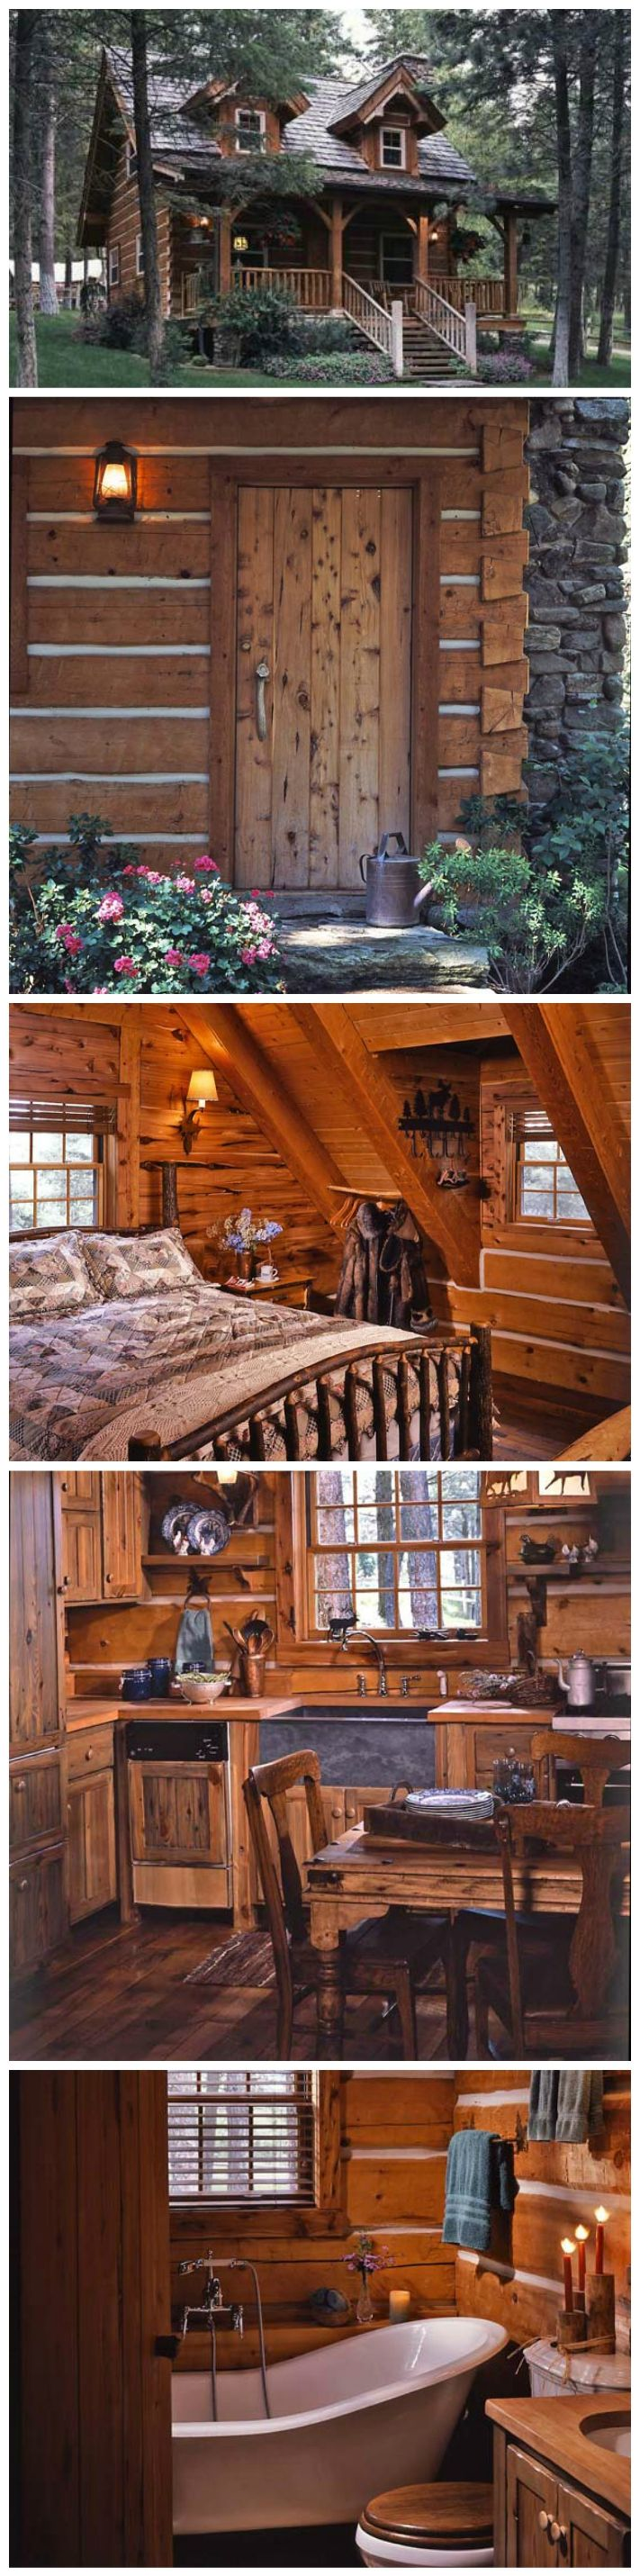 Jack Hanna's Log Cabin                                                                                                                                                      More